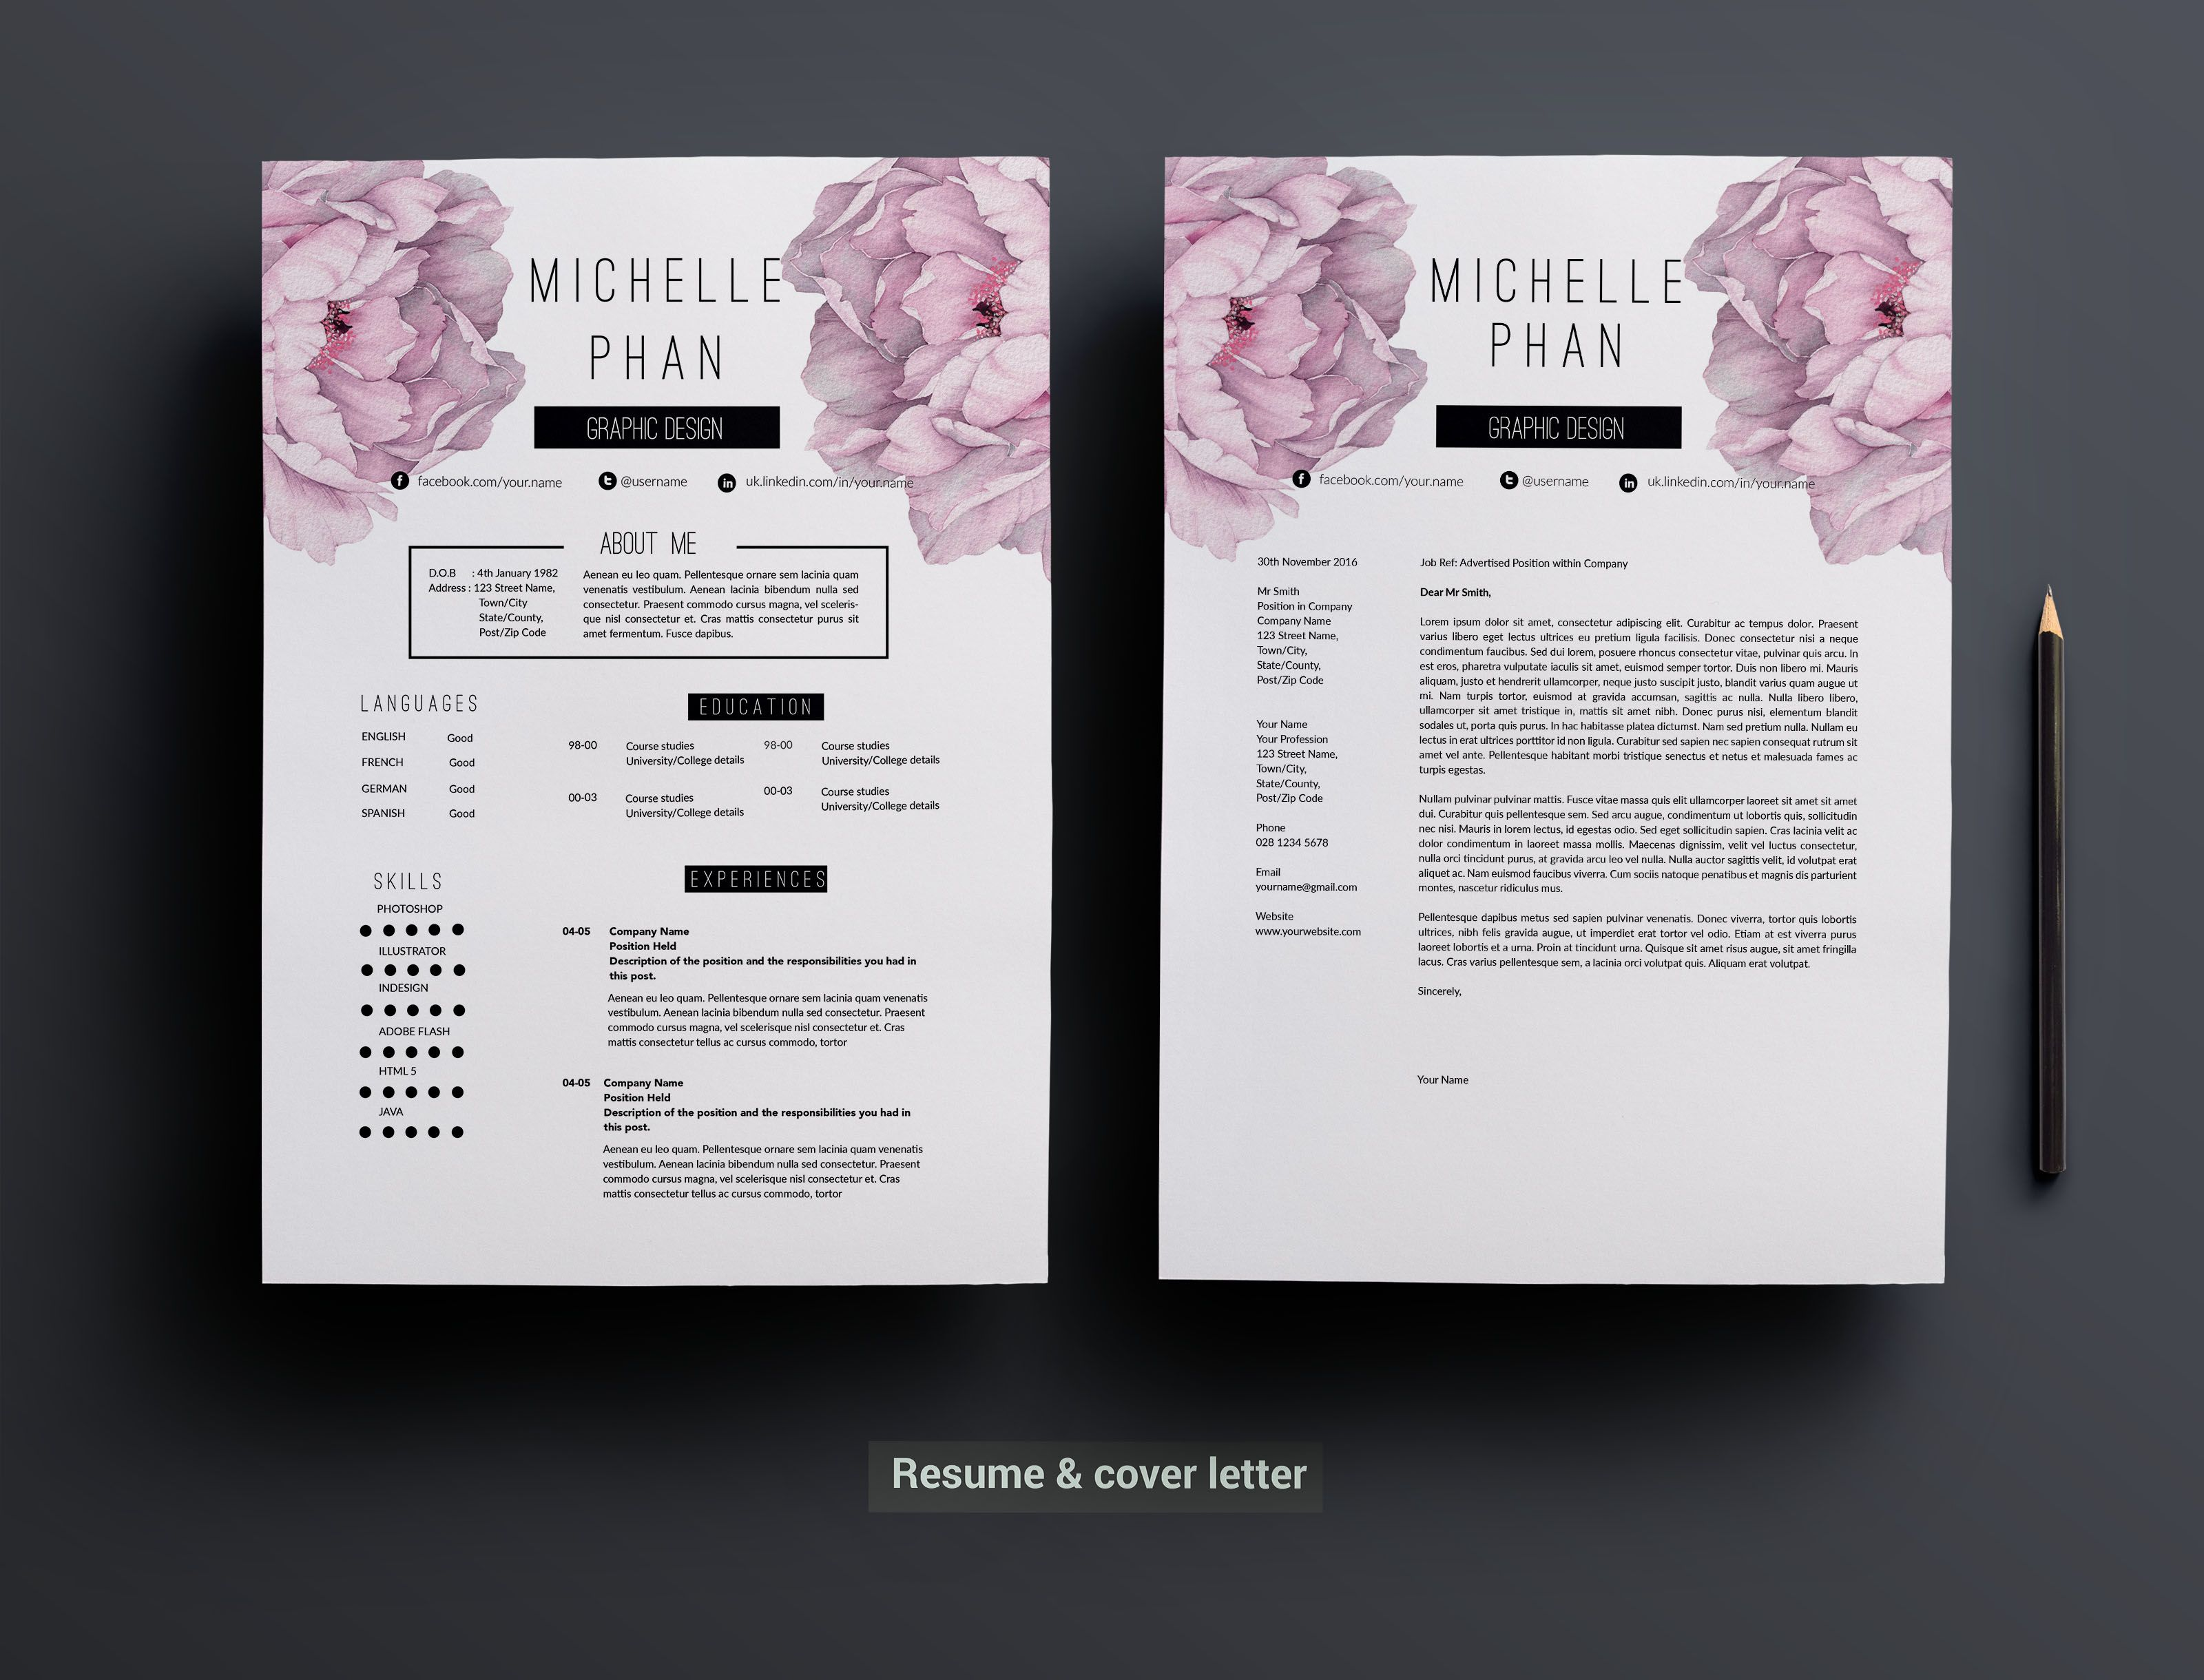 2 page resume template +cover letter by Chic templates on Creative ...